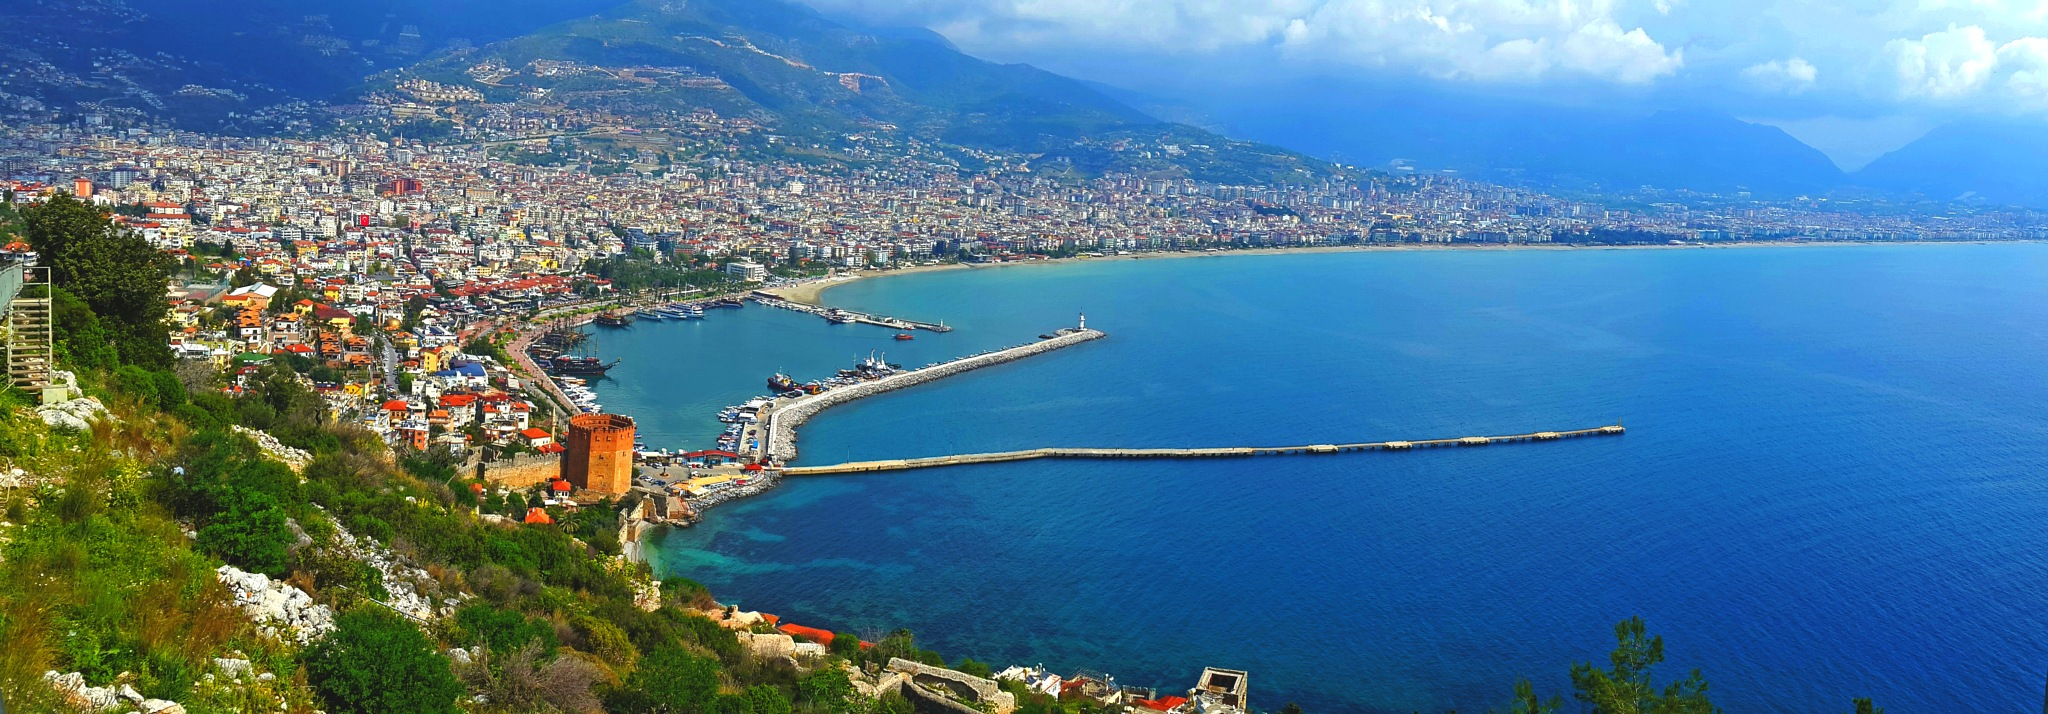 Photo in Landscape #alanya port see port landsc